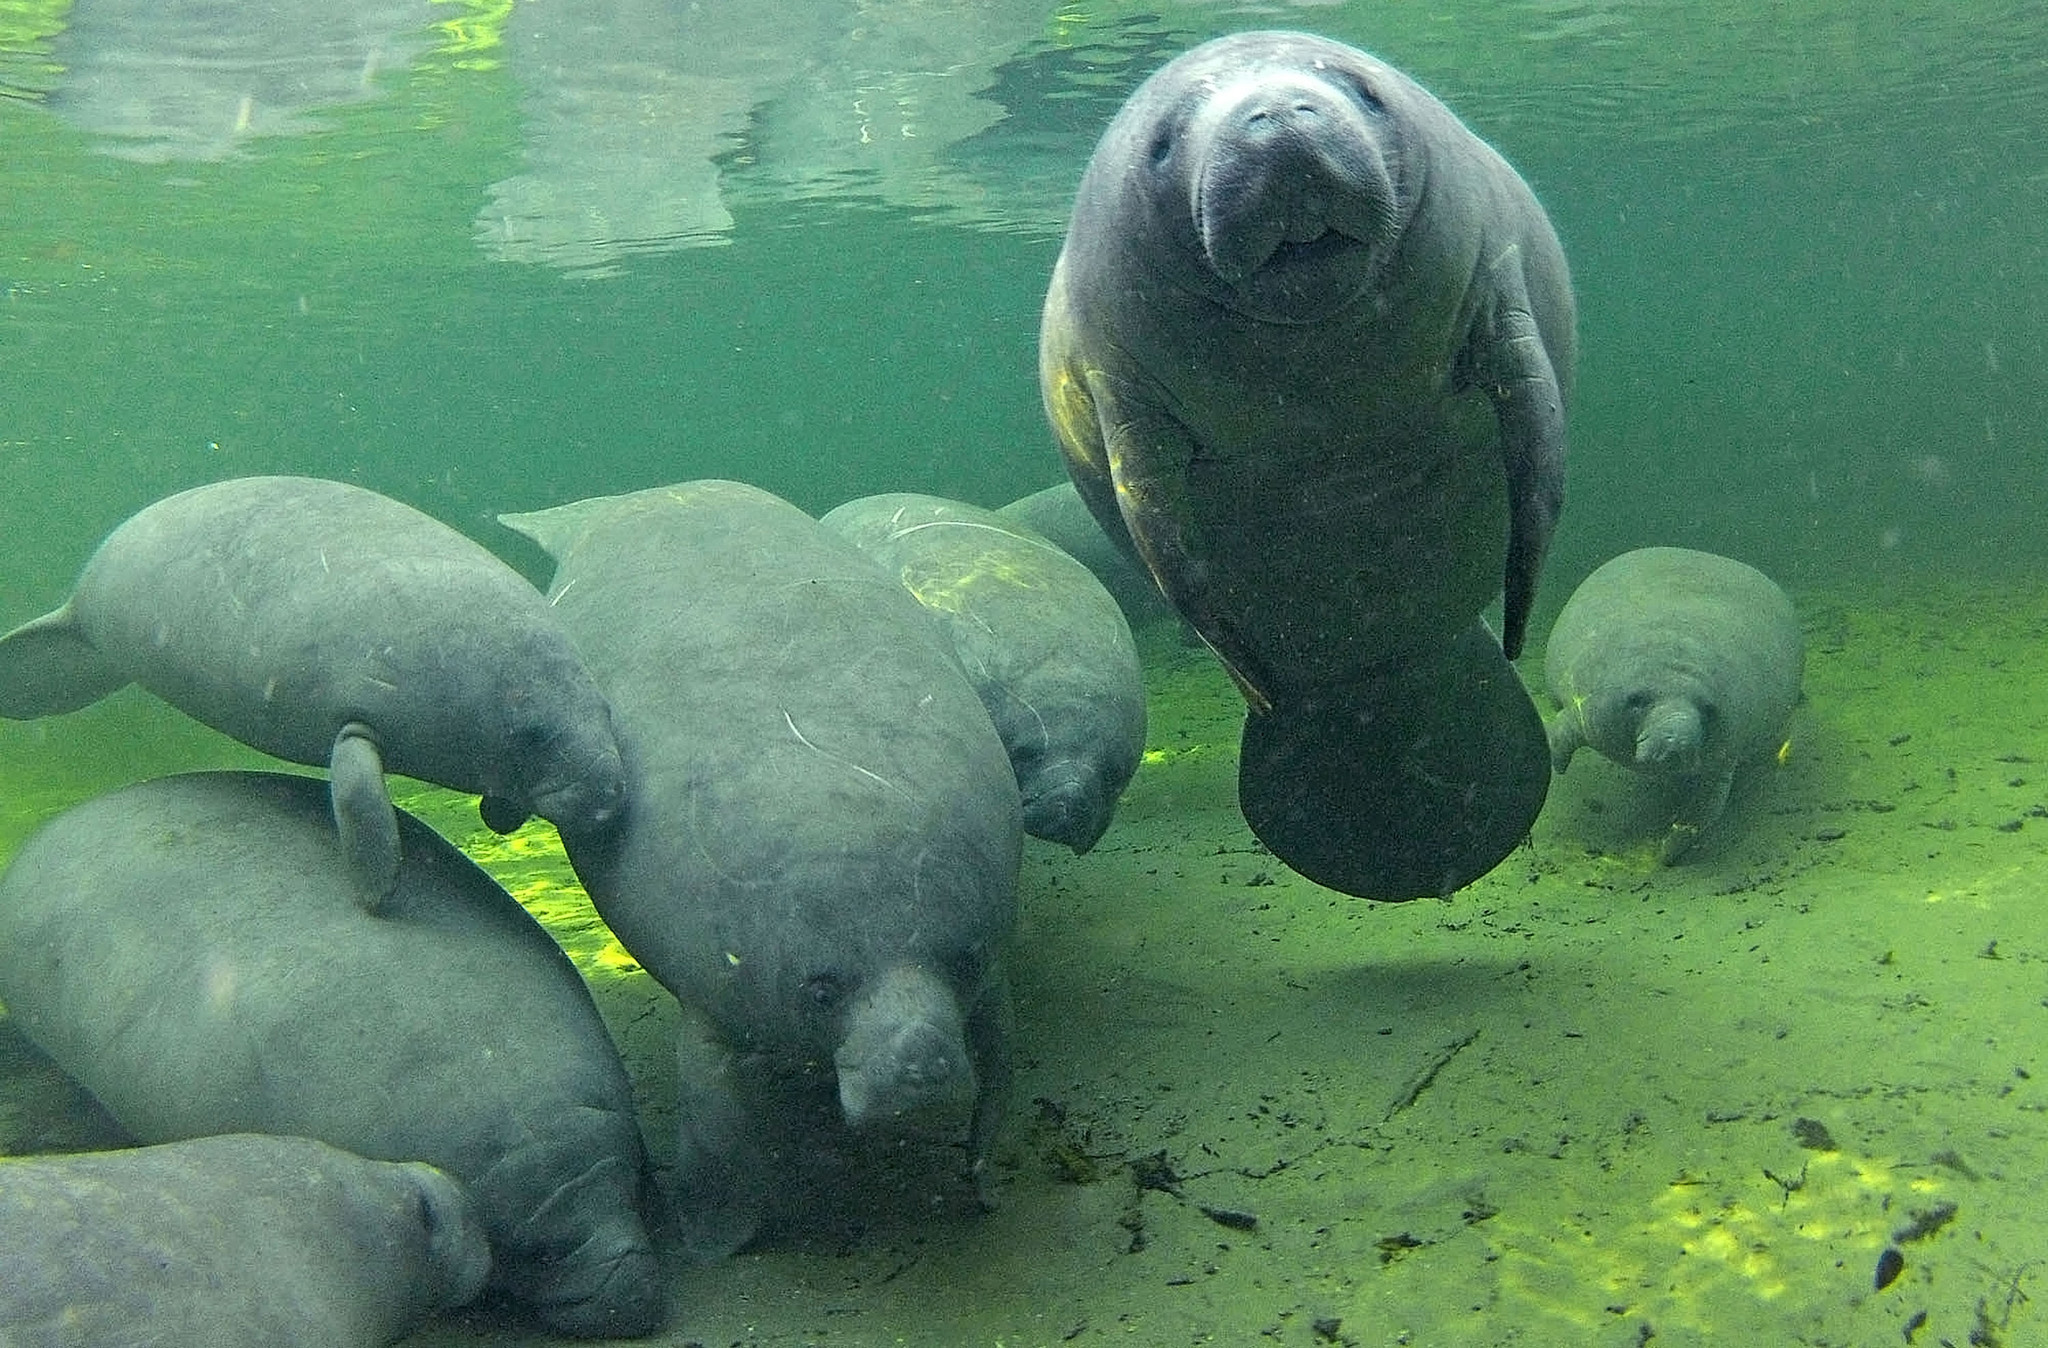 7 manatee facts to impress friends with on Manatee ...